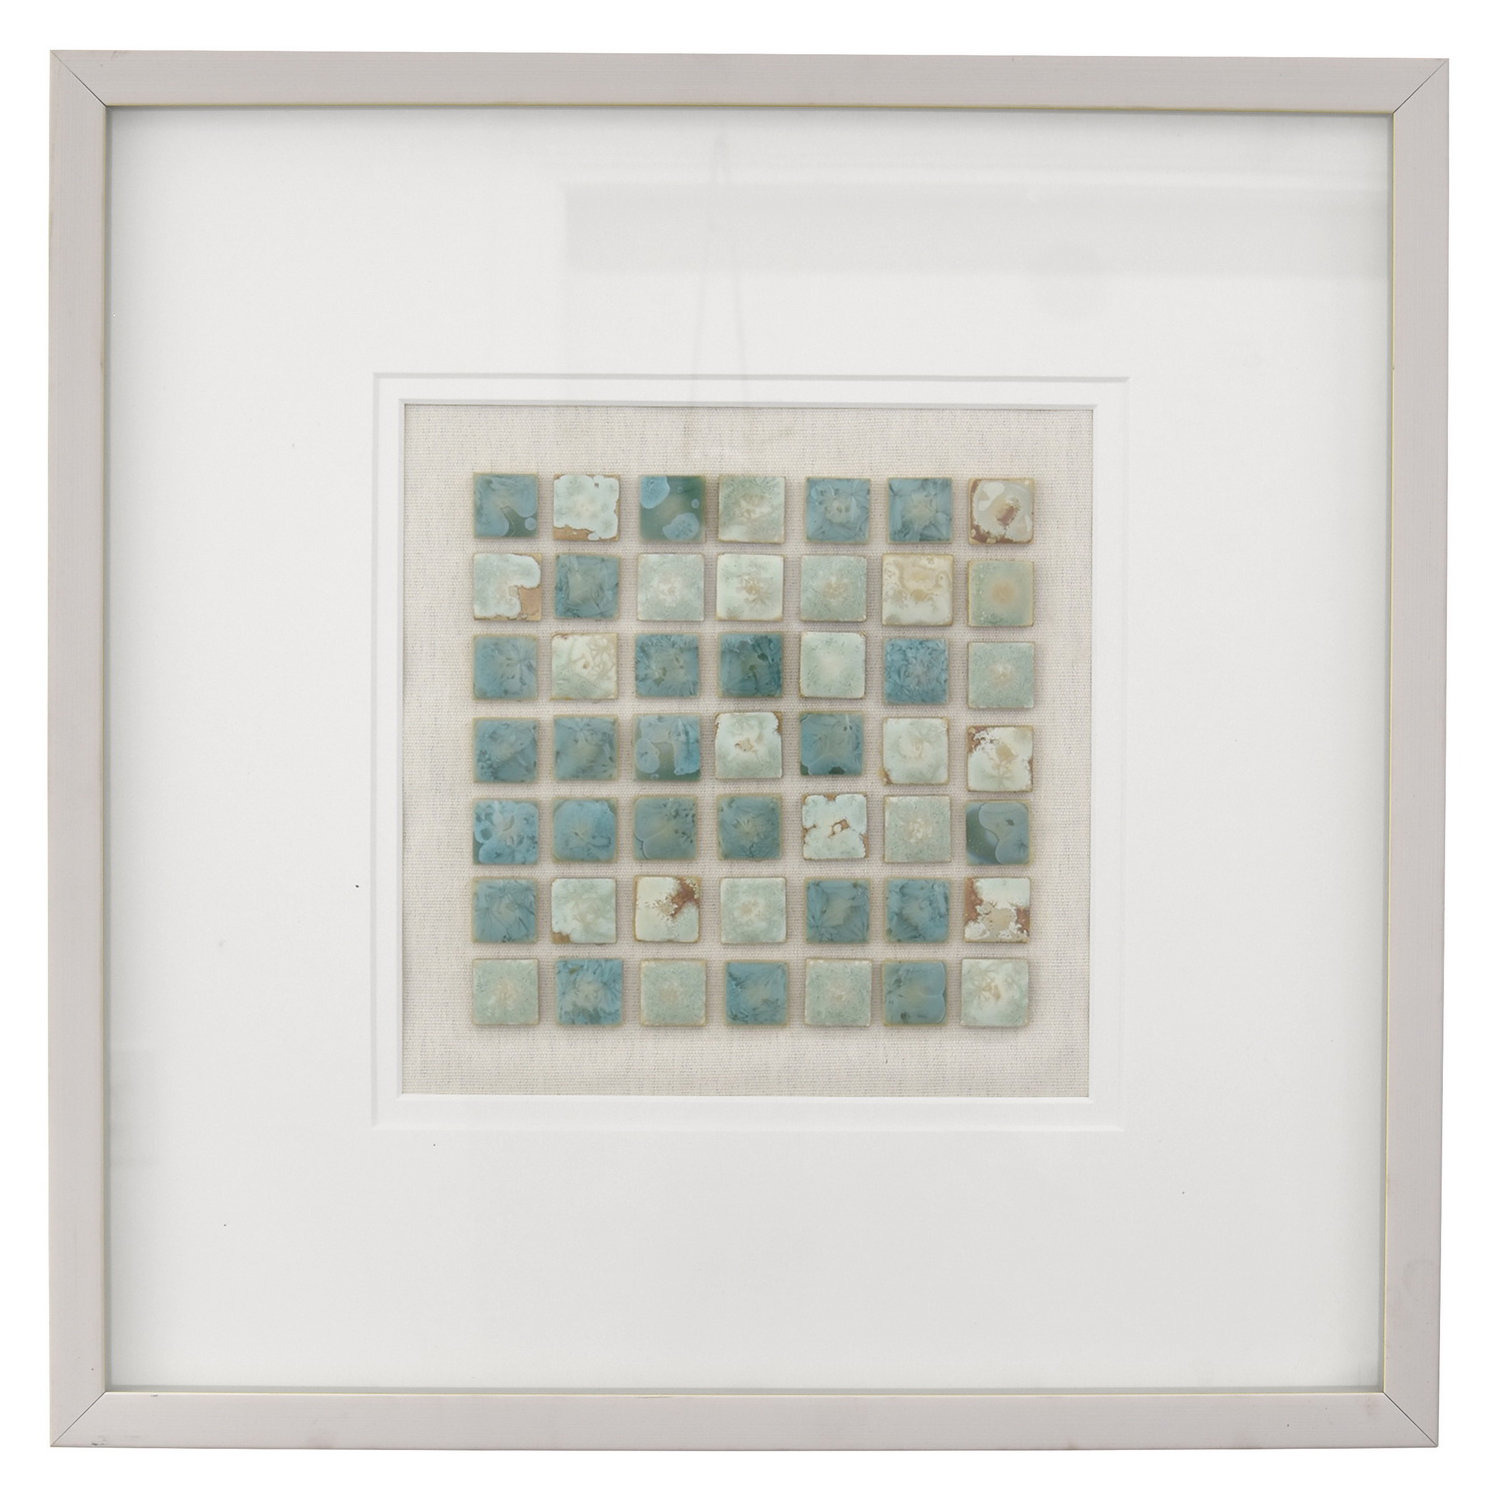 Mosaic Look Frame Wall Décor within 1 Piece Ortie Panel Wall Decor (Image 20 of 30)